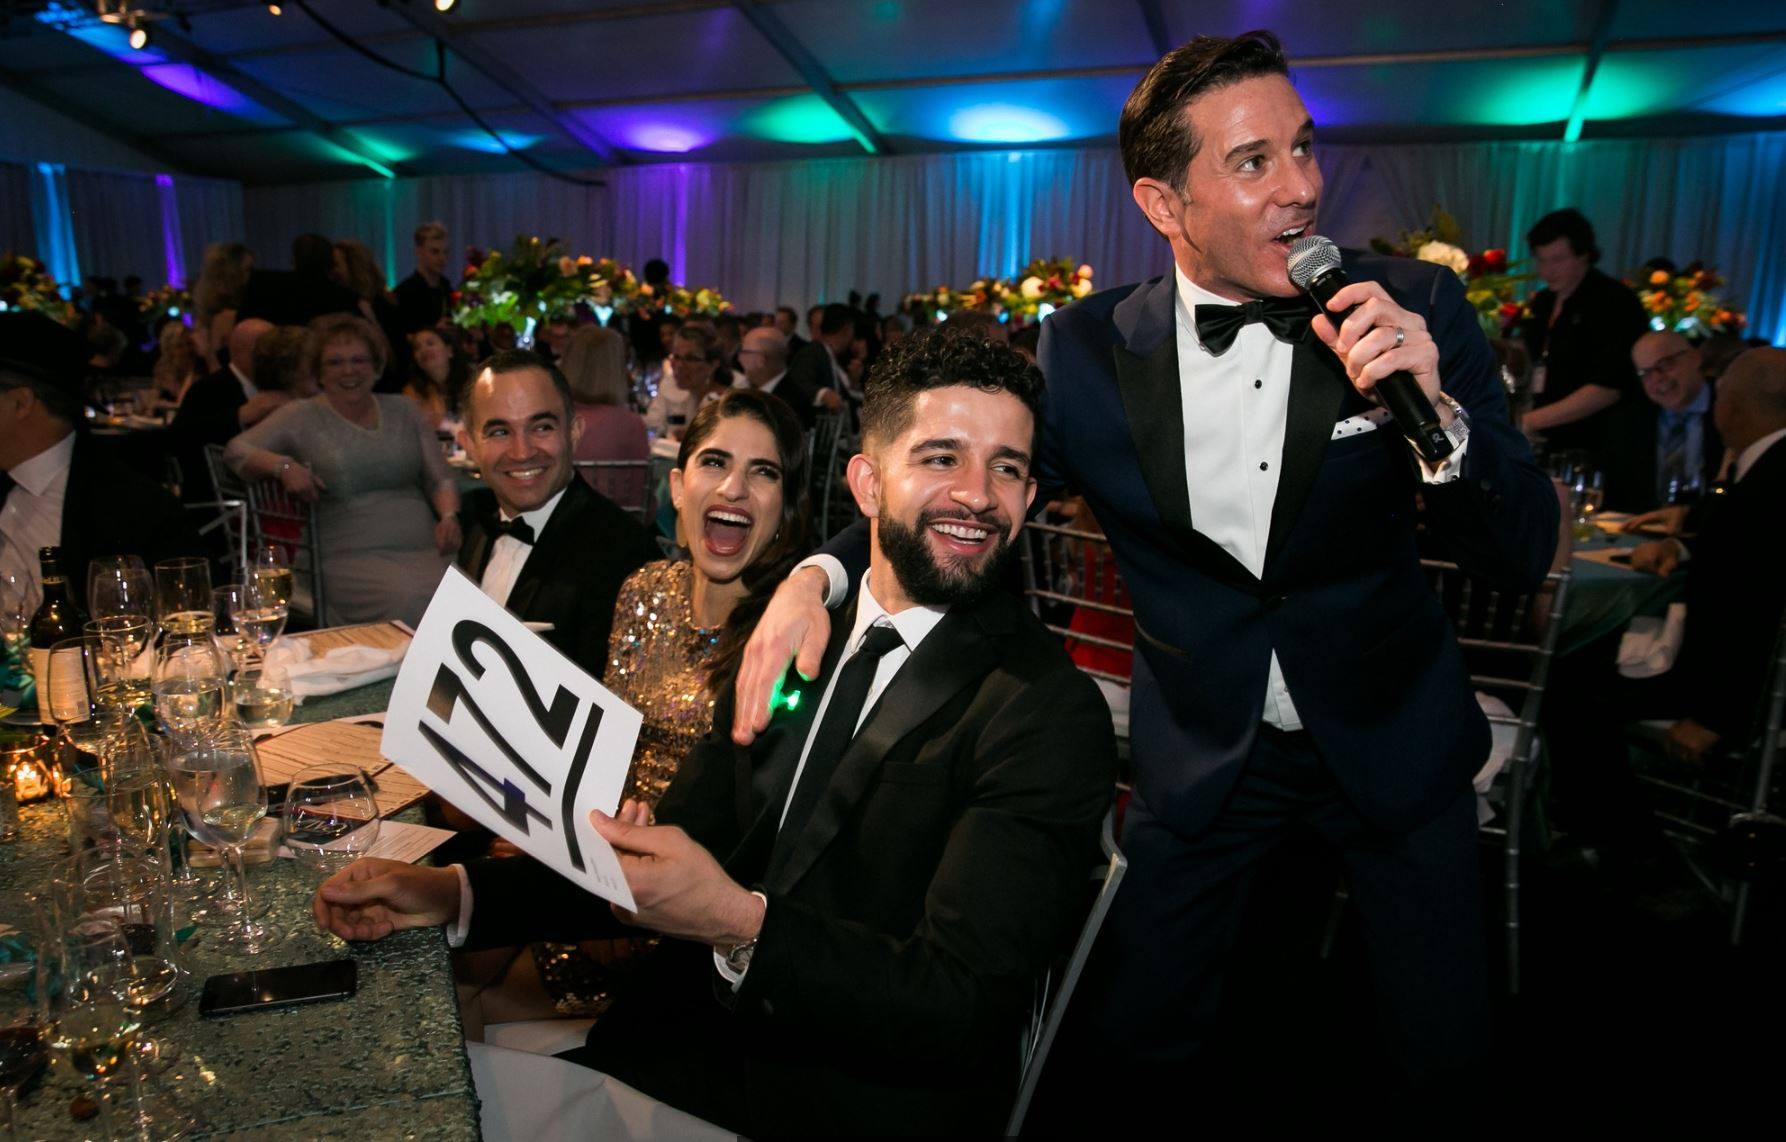 Matt hosts the Evergreen Gala for EvergreenHealth Medical Center, helping raise $1.4 million to improve health care for communities on the Eastside.